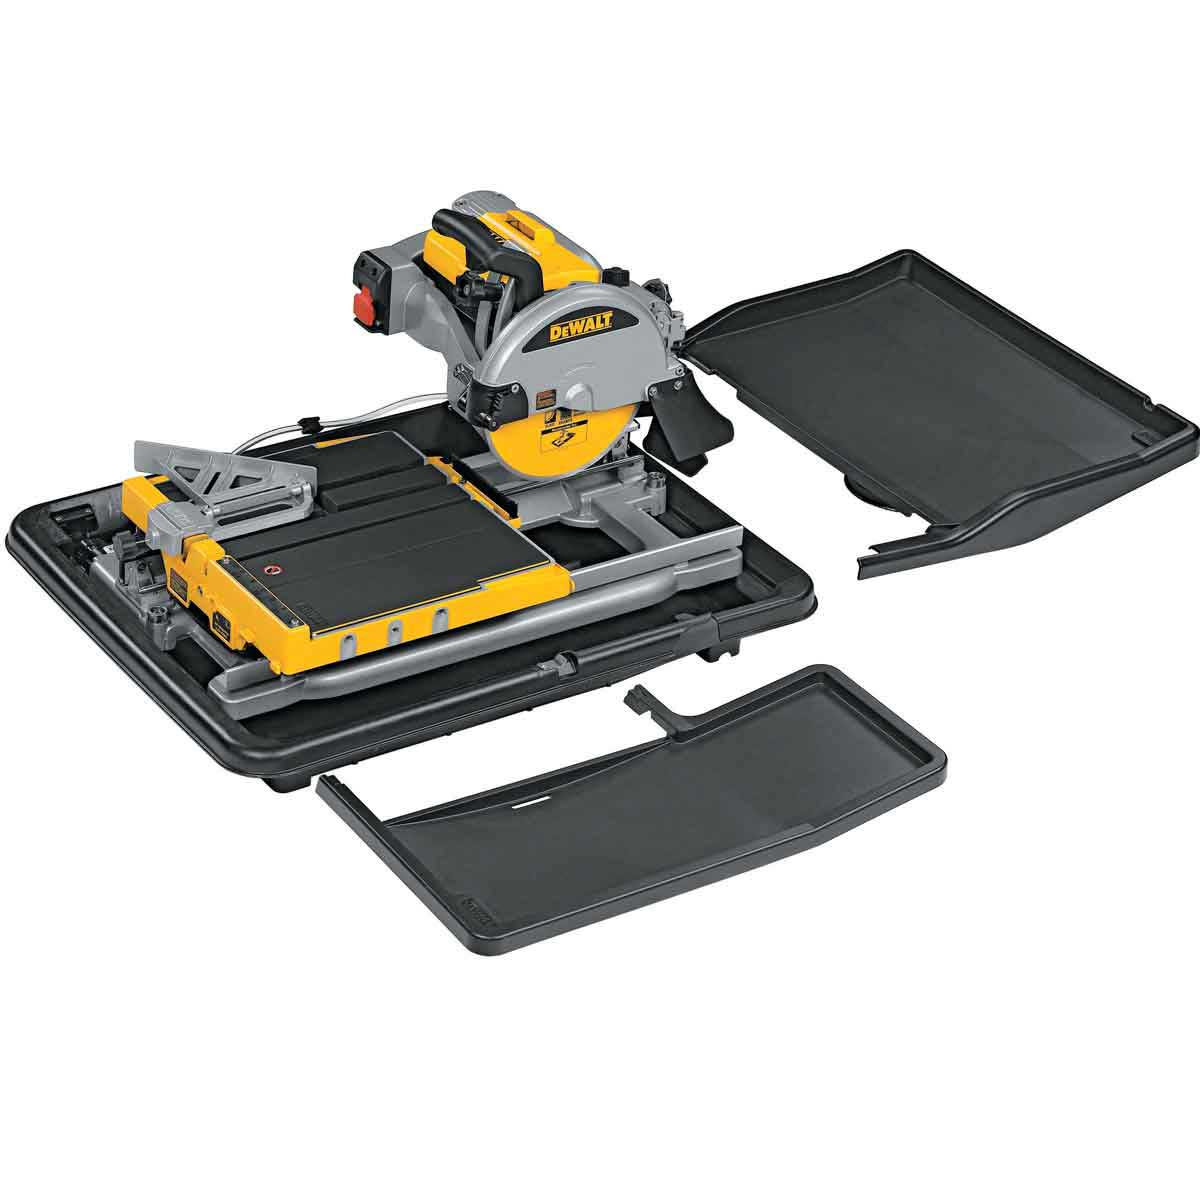 dewalt d24000 tile saw w/ water pan